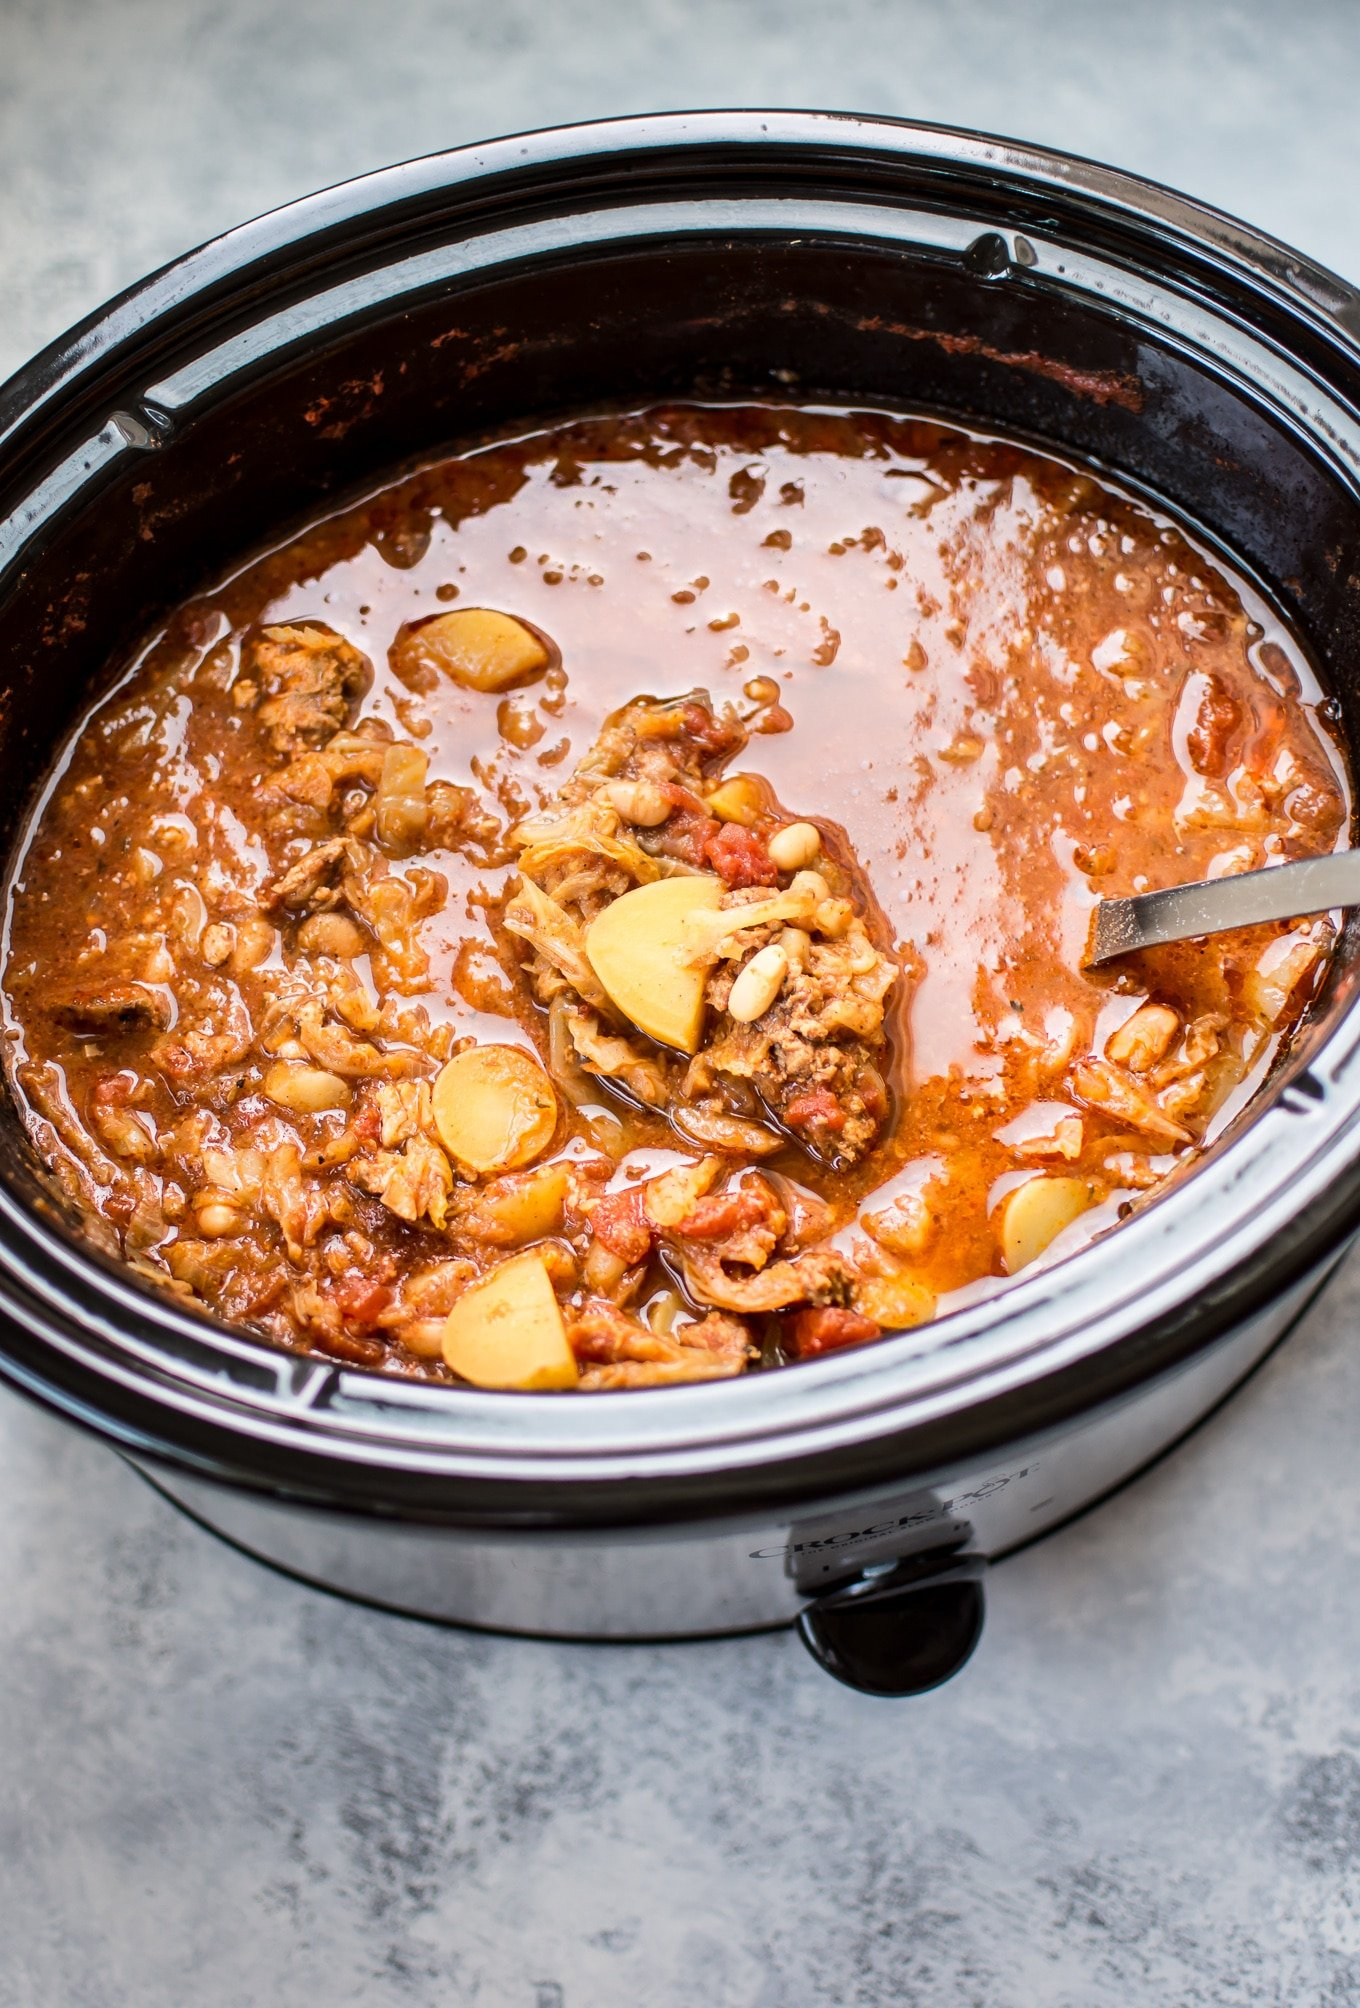 This Crockpot cabbage soup is hearty, warming, and packed with flavor! Throw everything in the slow cooker, and you'll come home to a delicious hot bowl of soup.